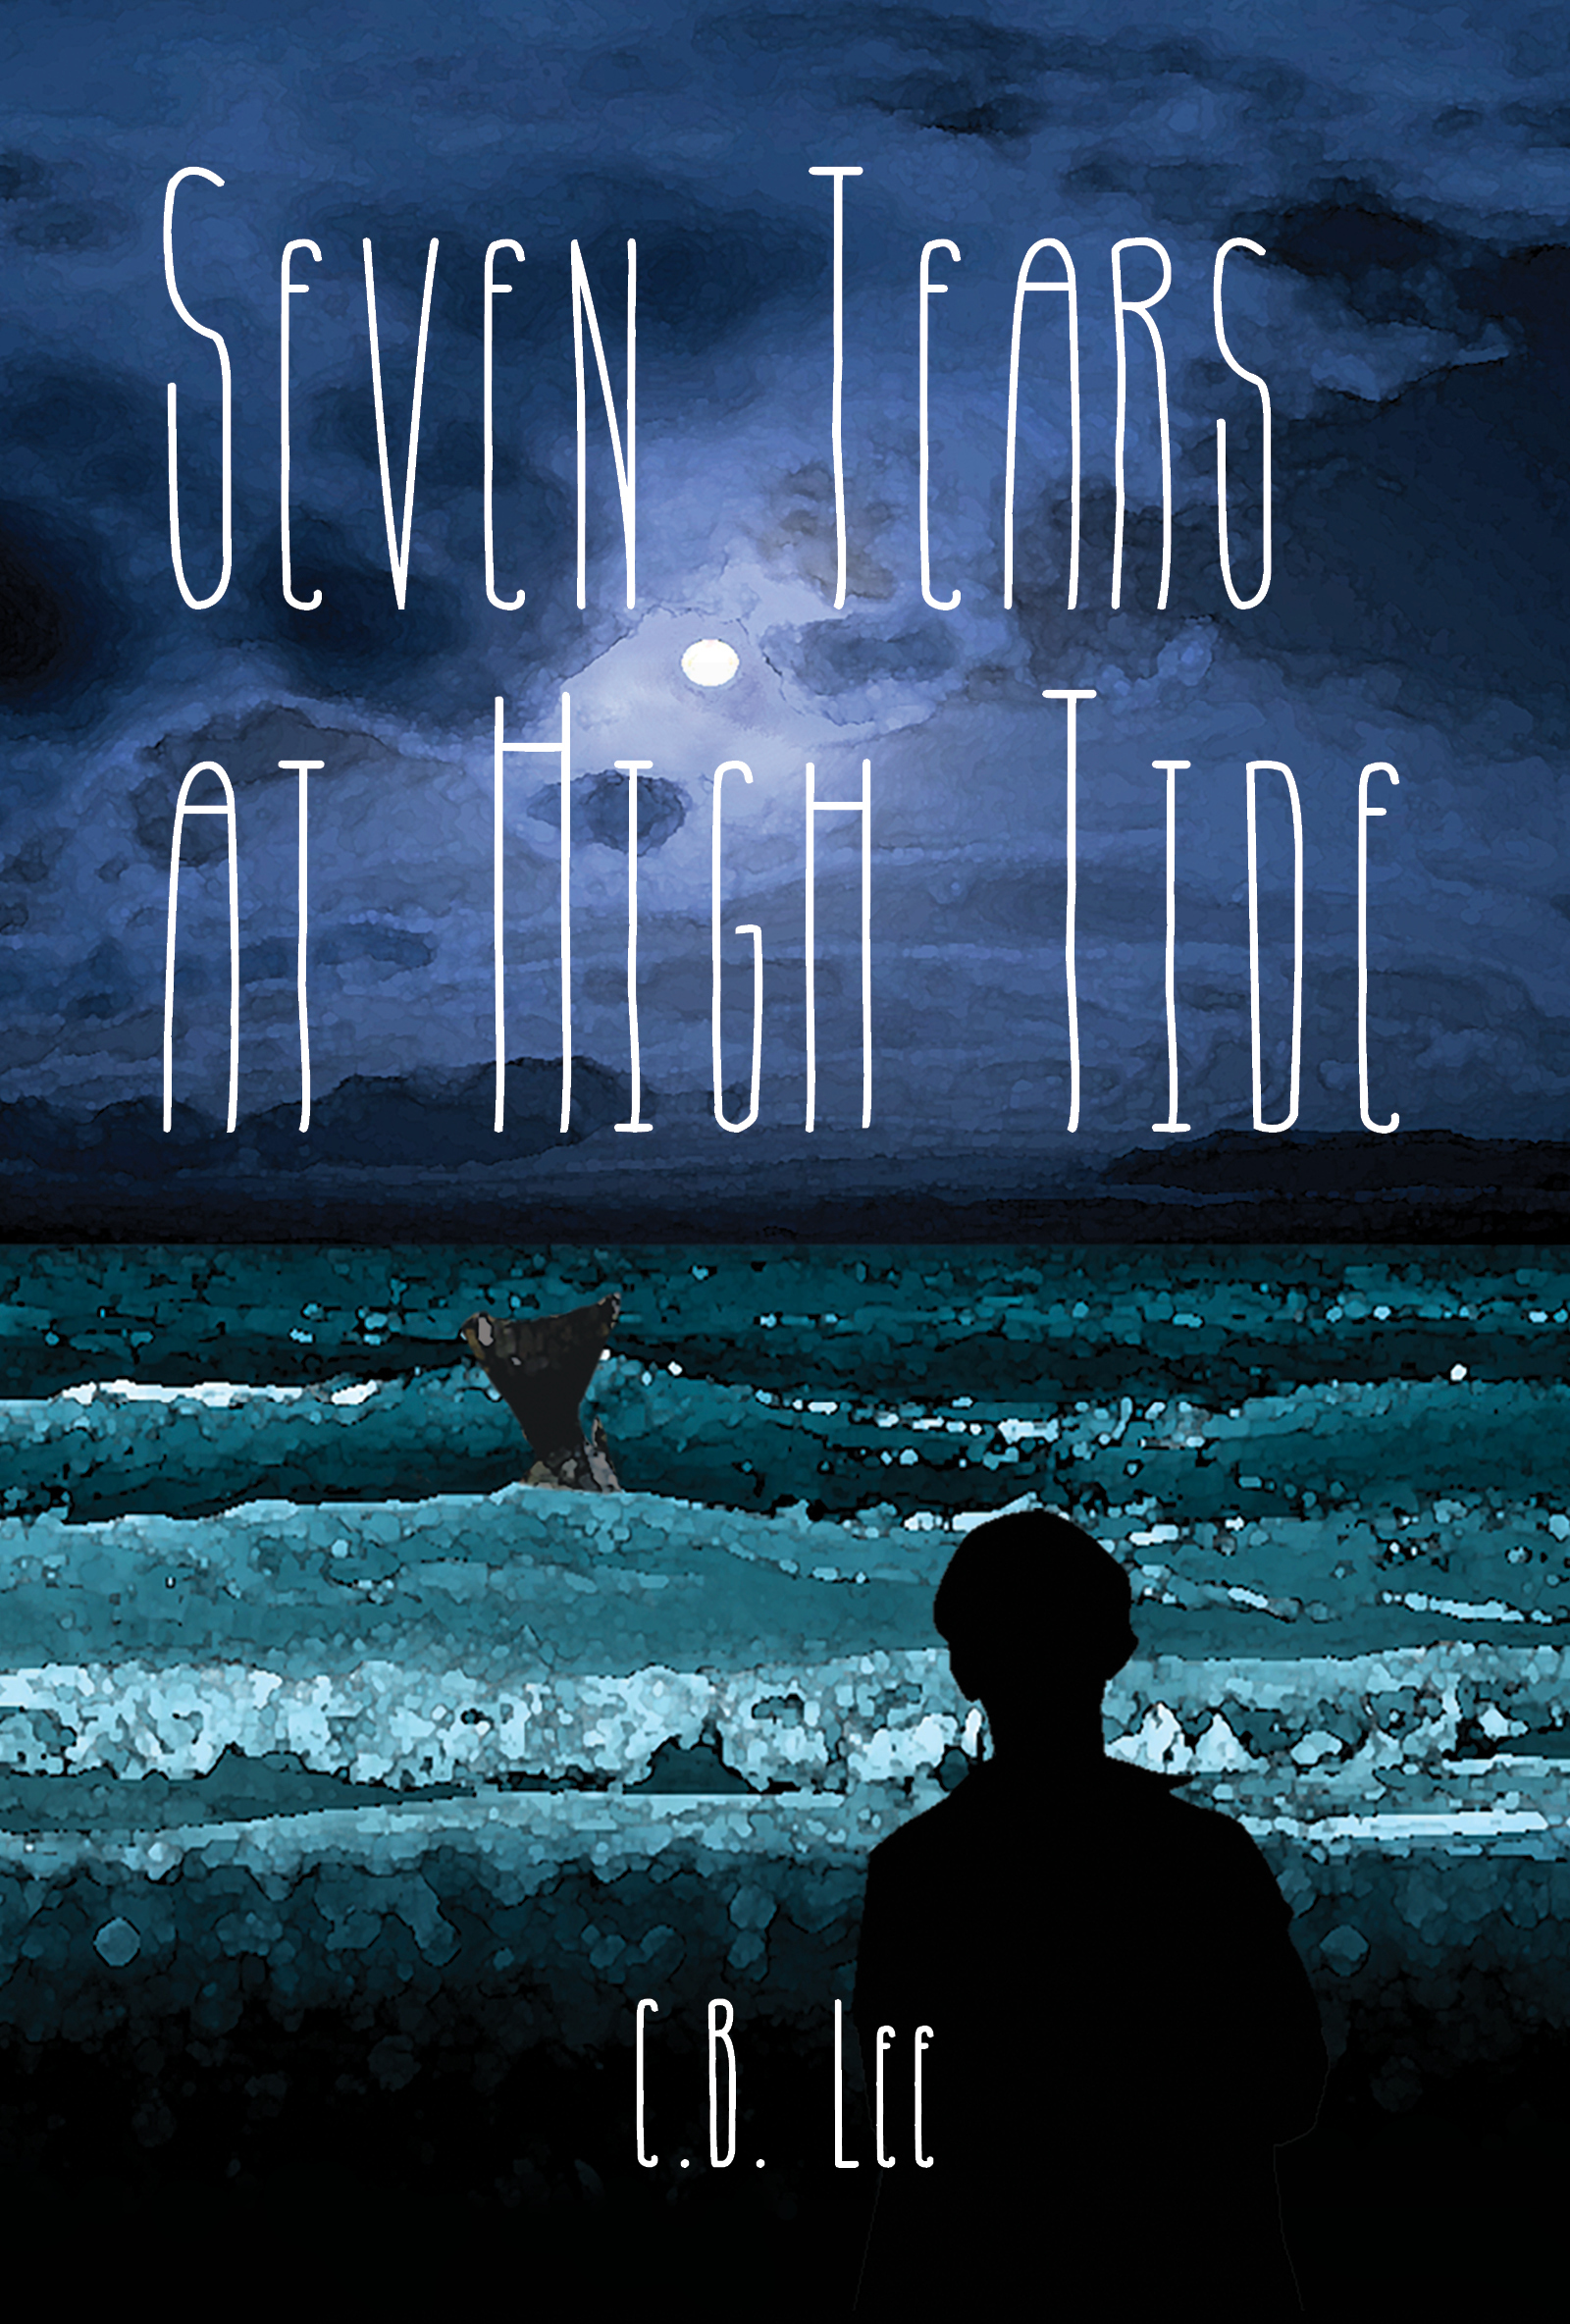 Seven Tears at High Tide by C.B. Lee